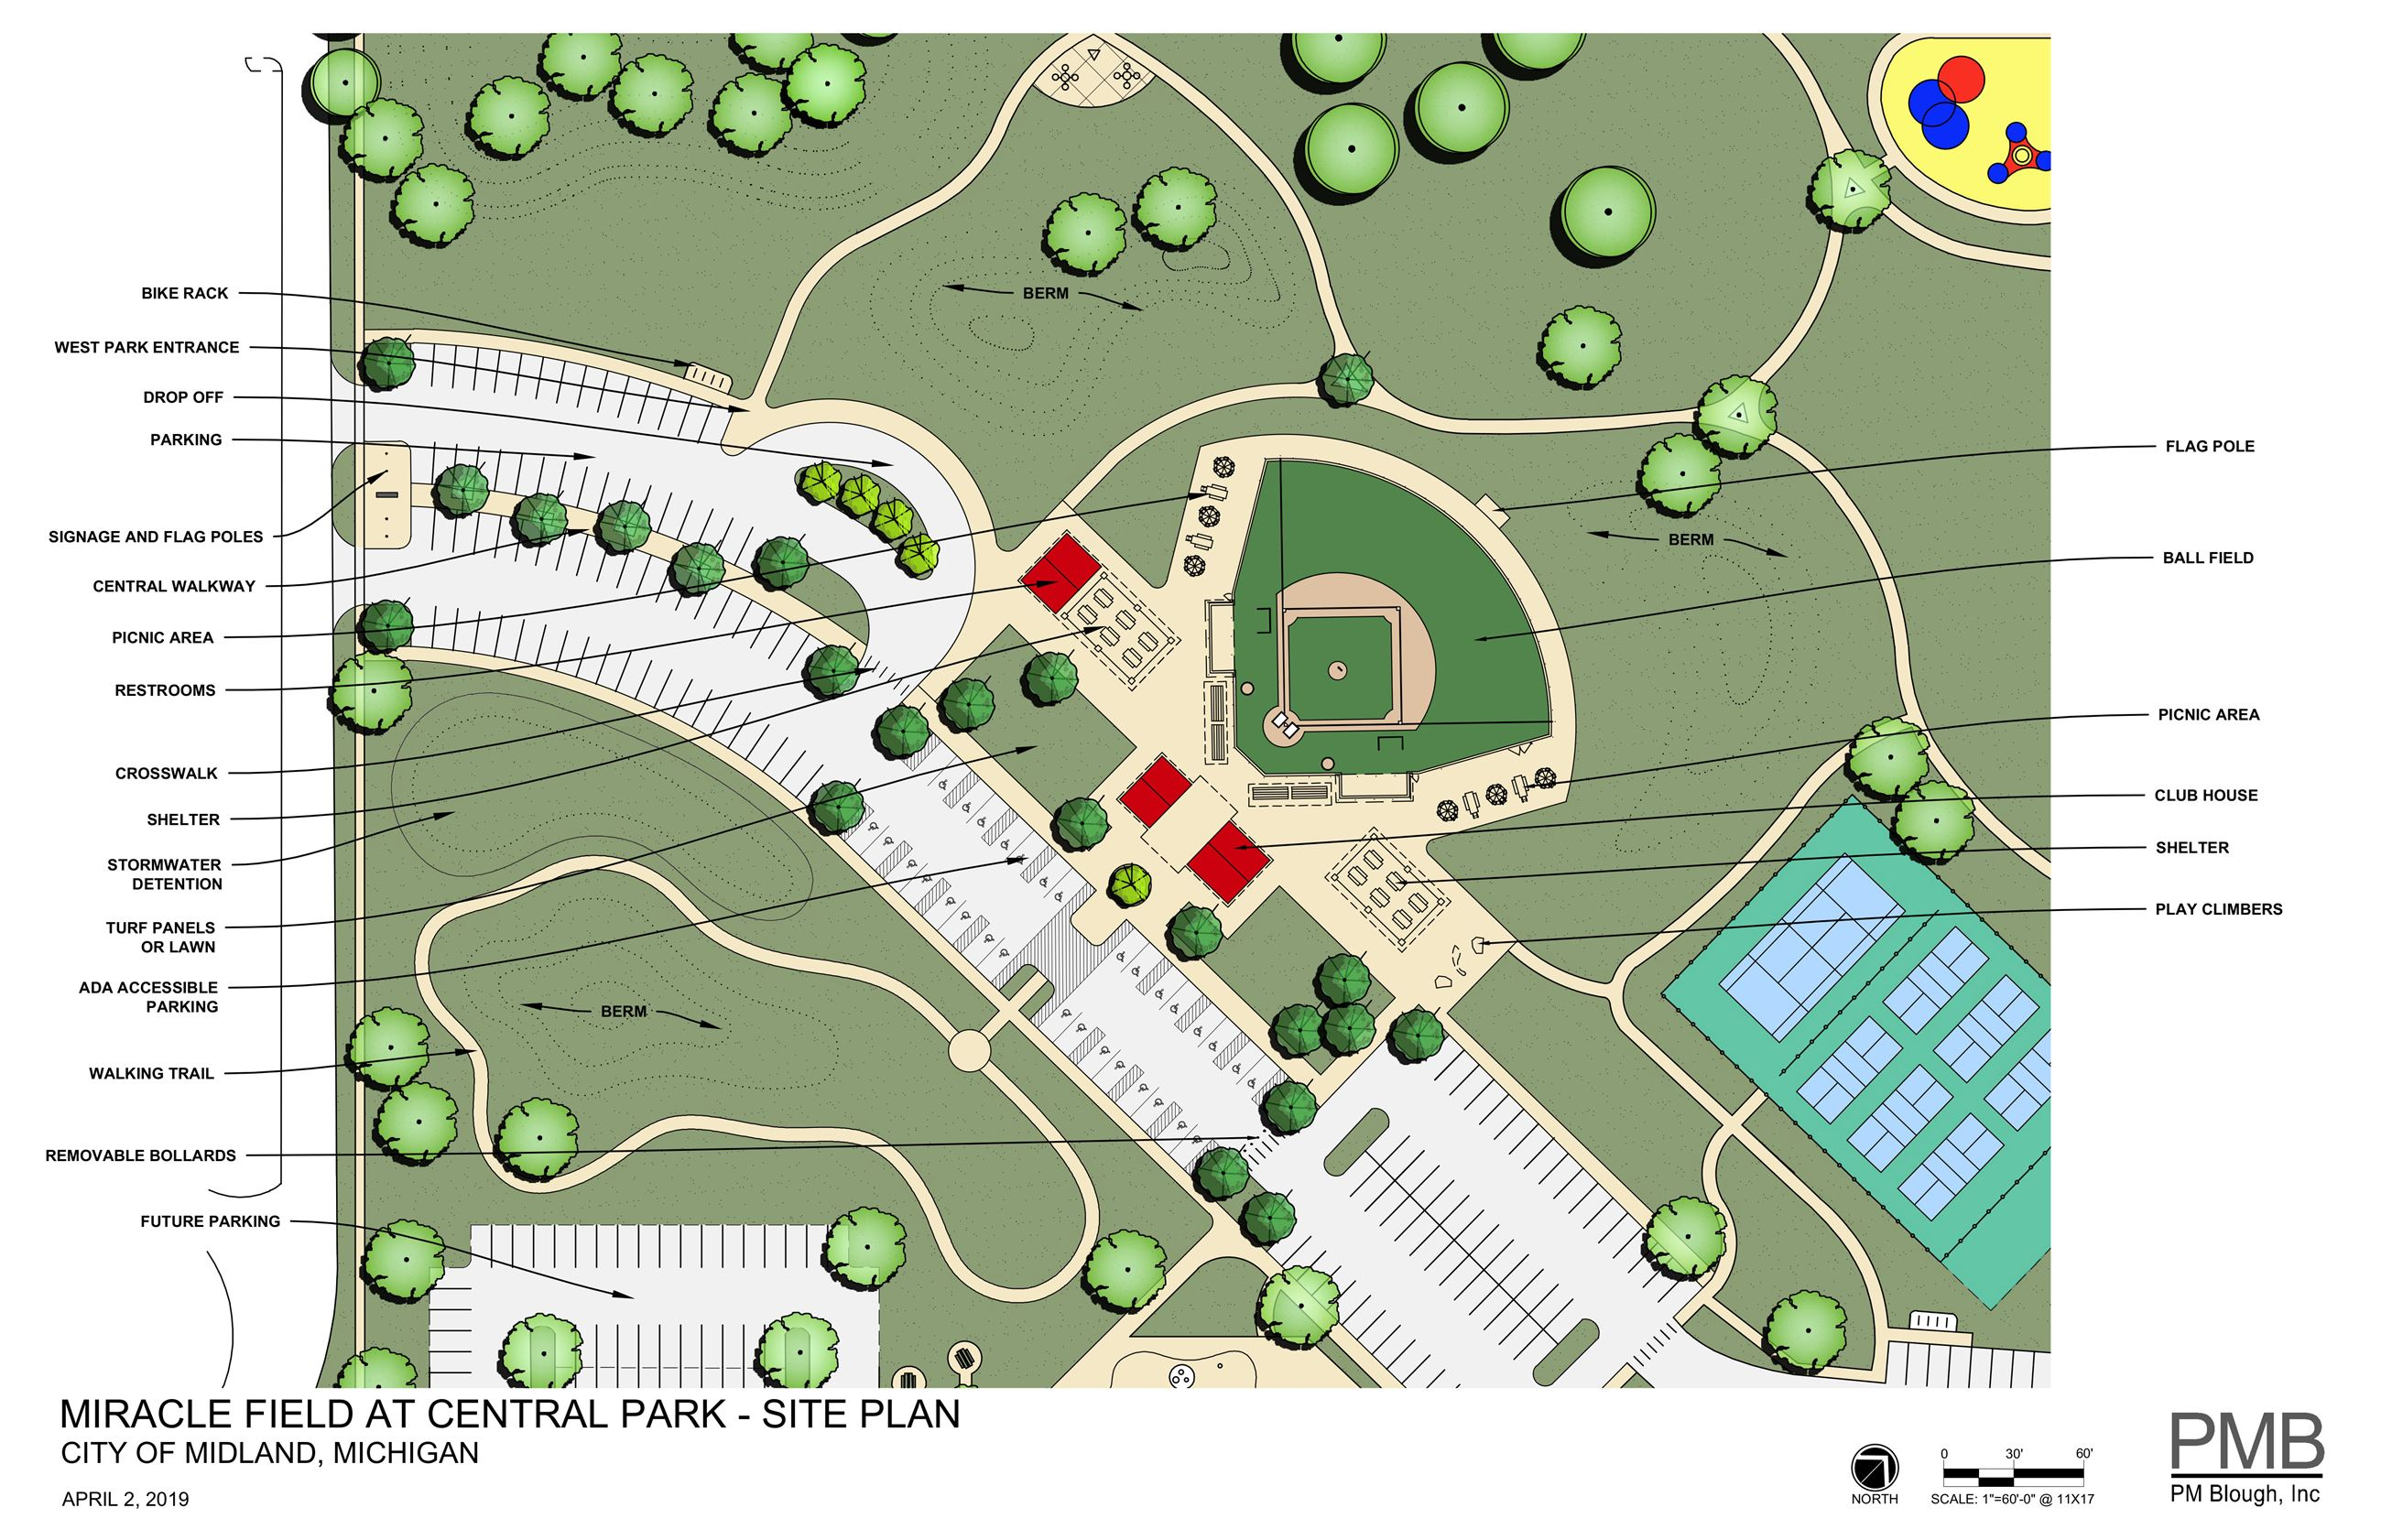 Central Park Miracle Field Site Plan Rendering 04-02-2019